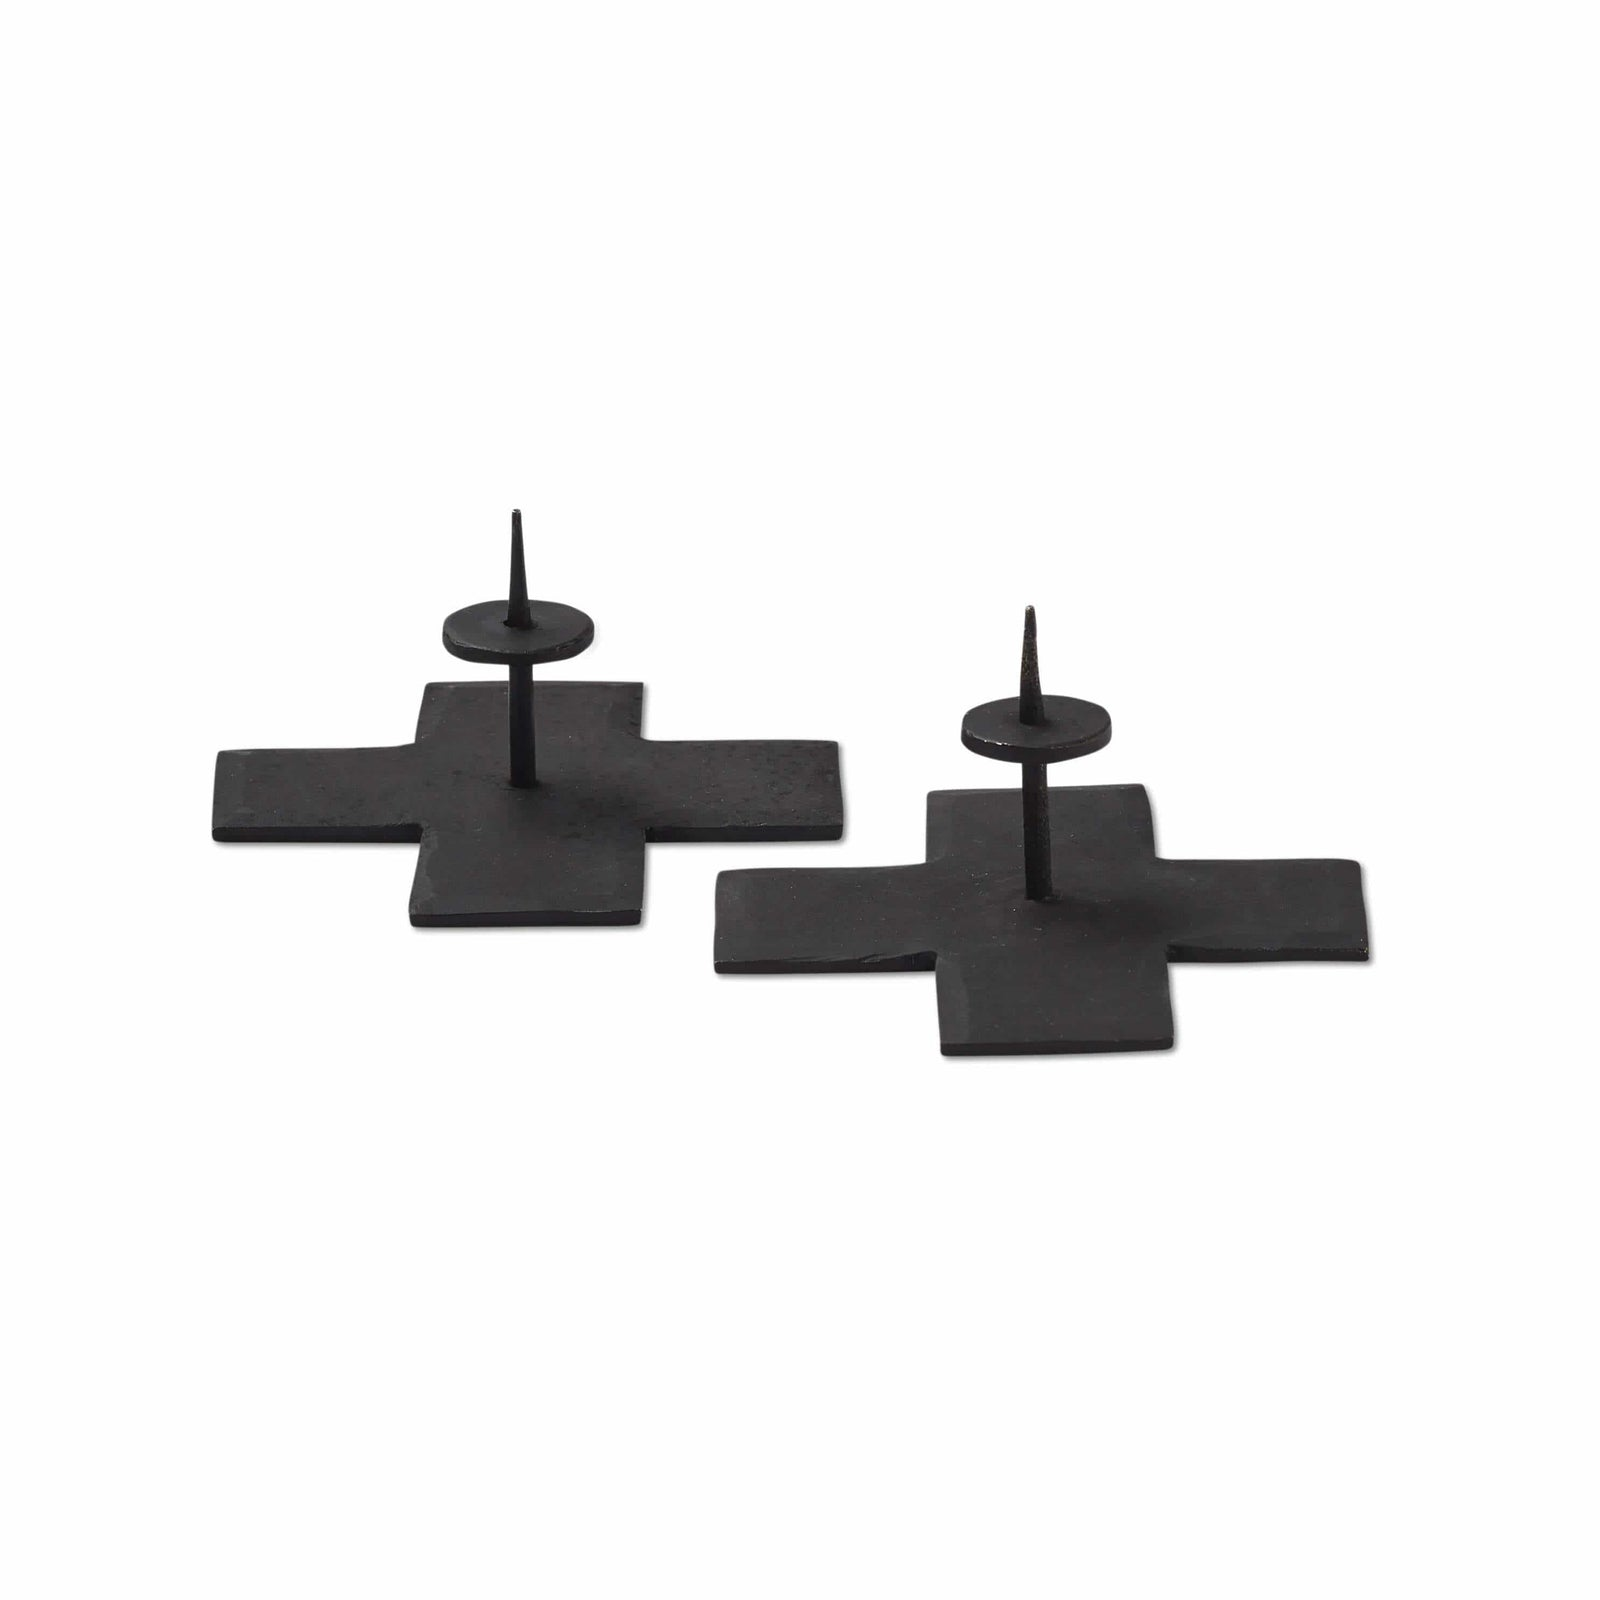 Magenta Rae Dunn Icon Taper Candle Holders Black -  Set of 2